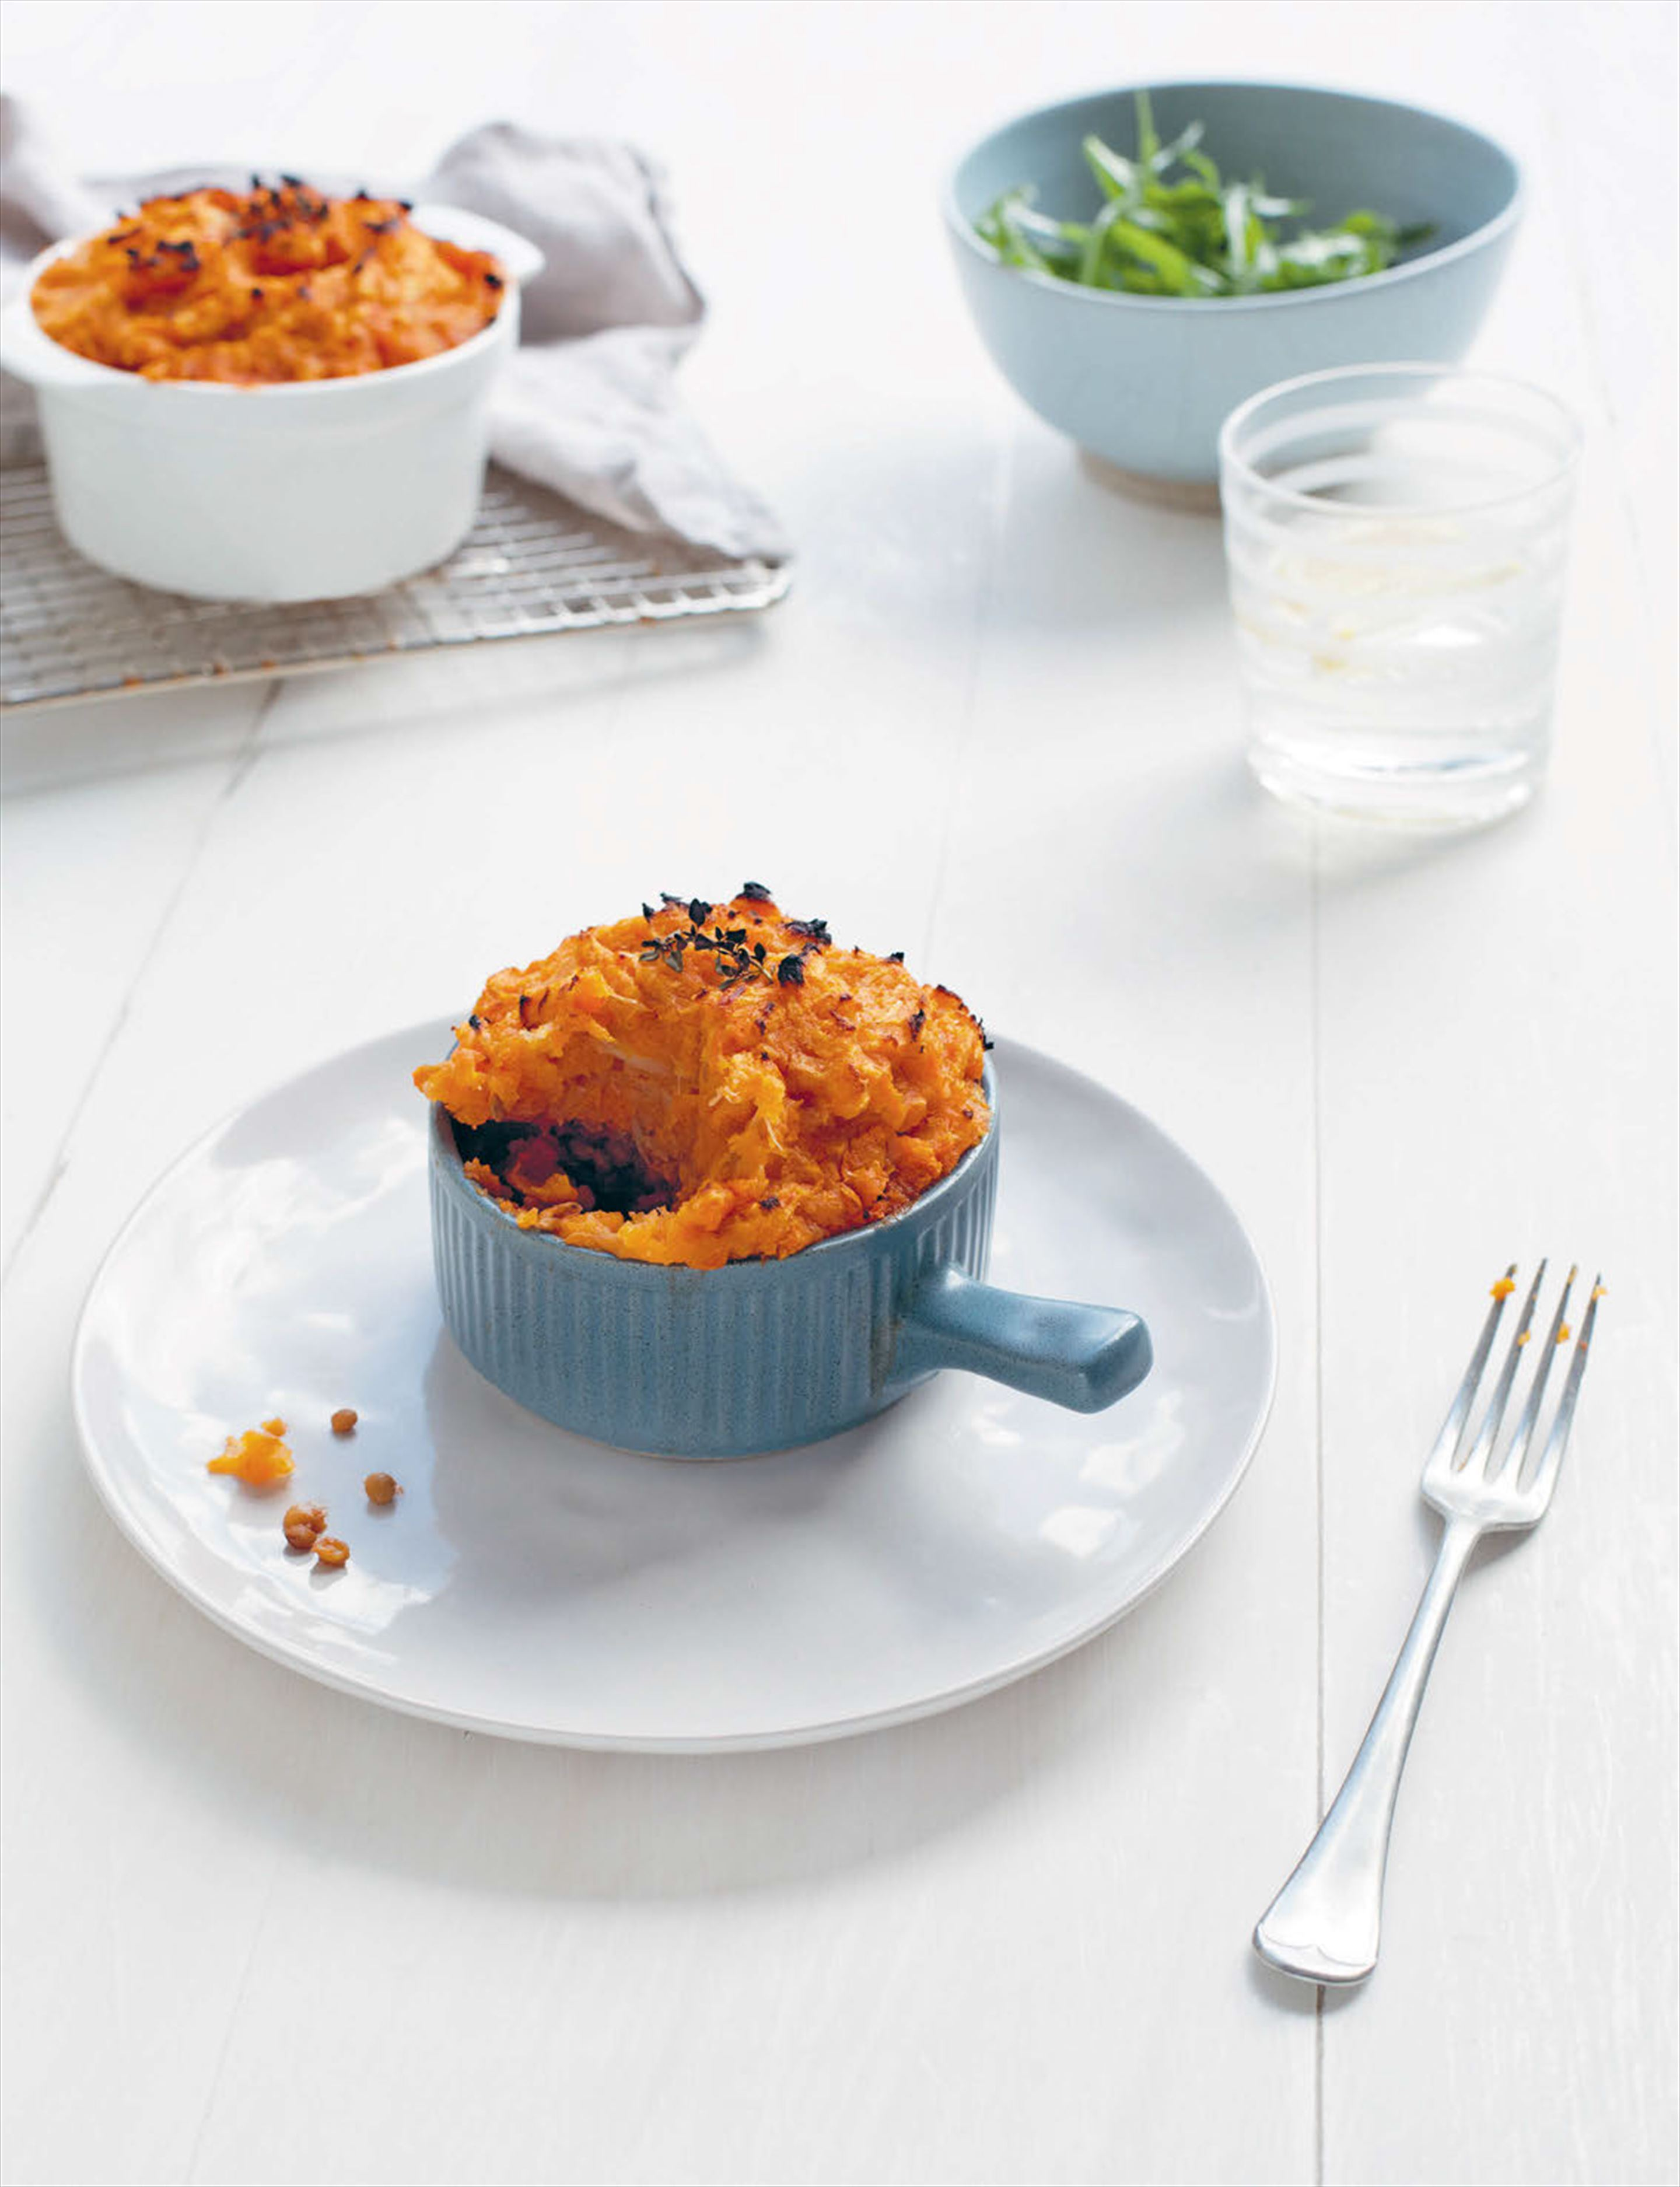 Cottage pies with root vegetable mash